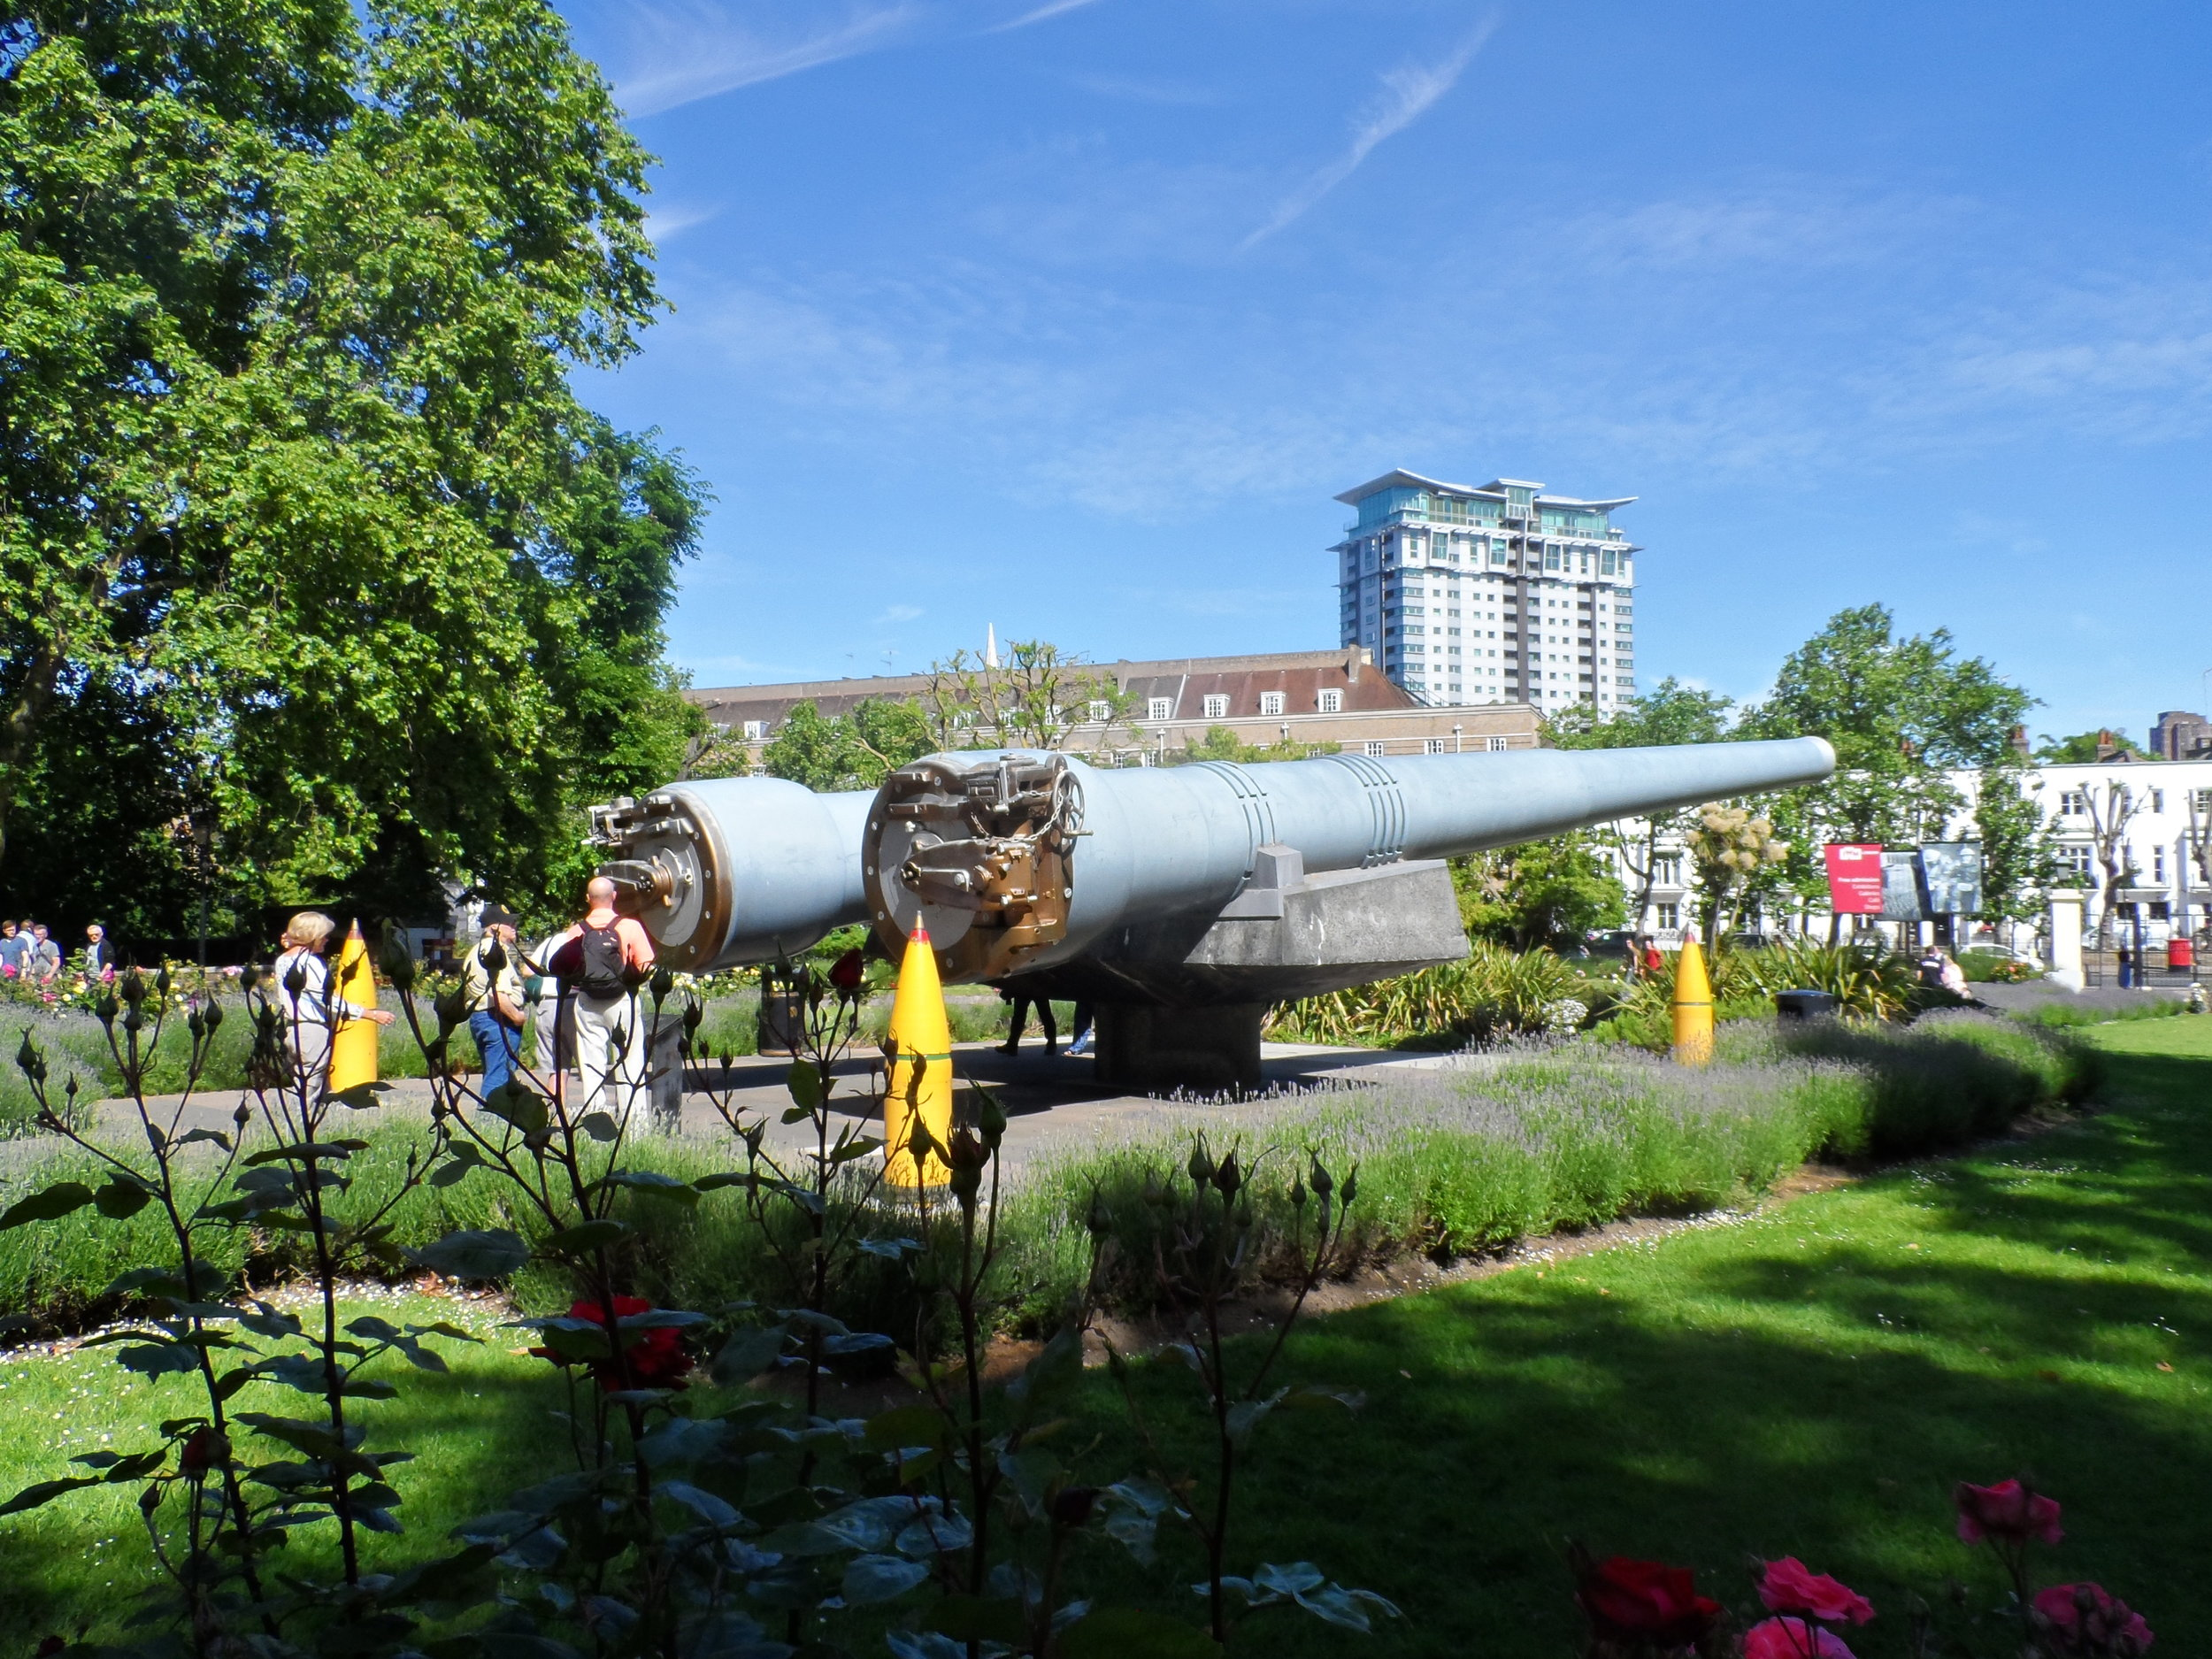 15 Inch Battleship Cannons outside the Imperial War Museum